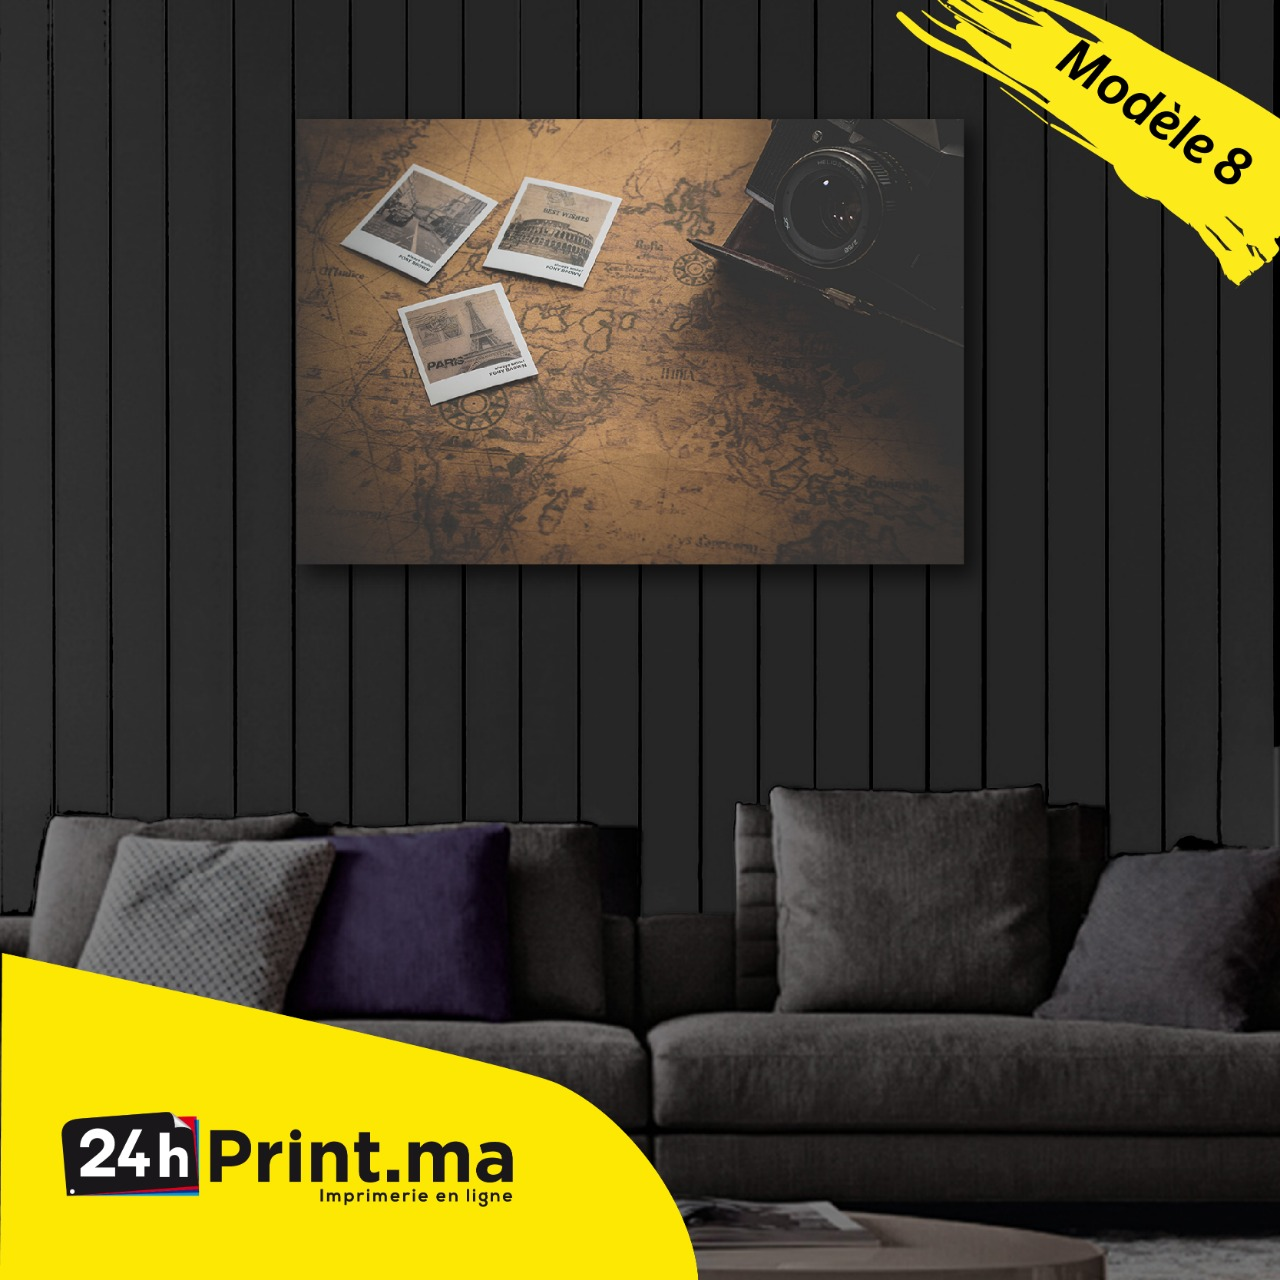 https://www.24hprint.ma/images/products_gallery_images/881.jpeg